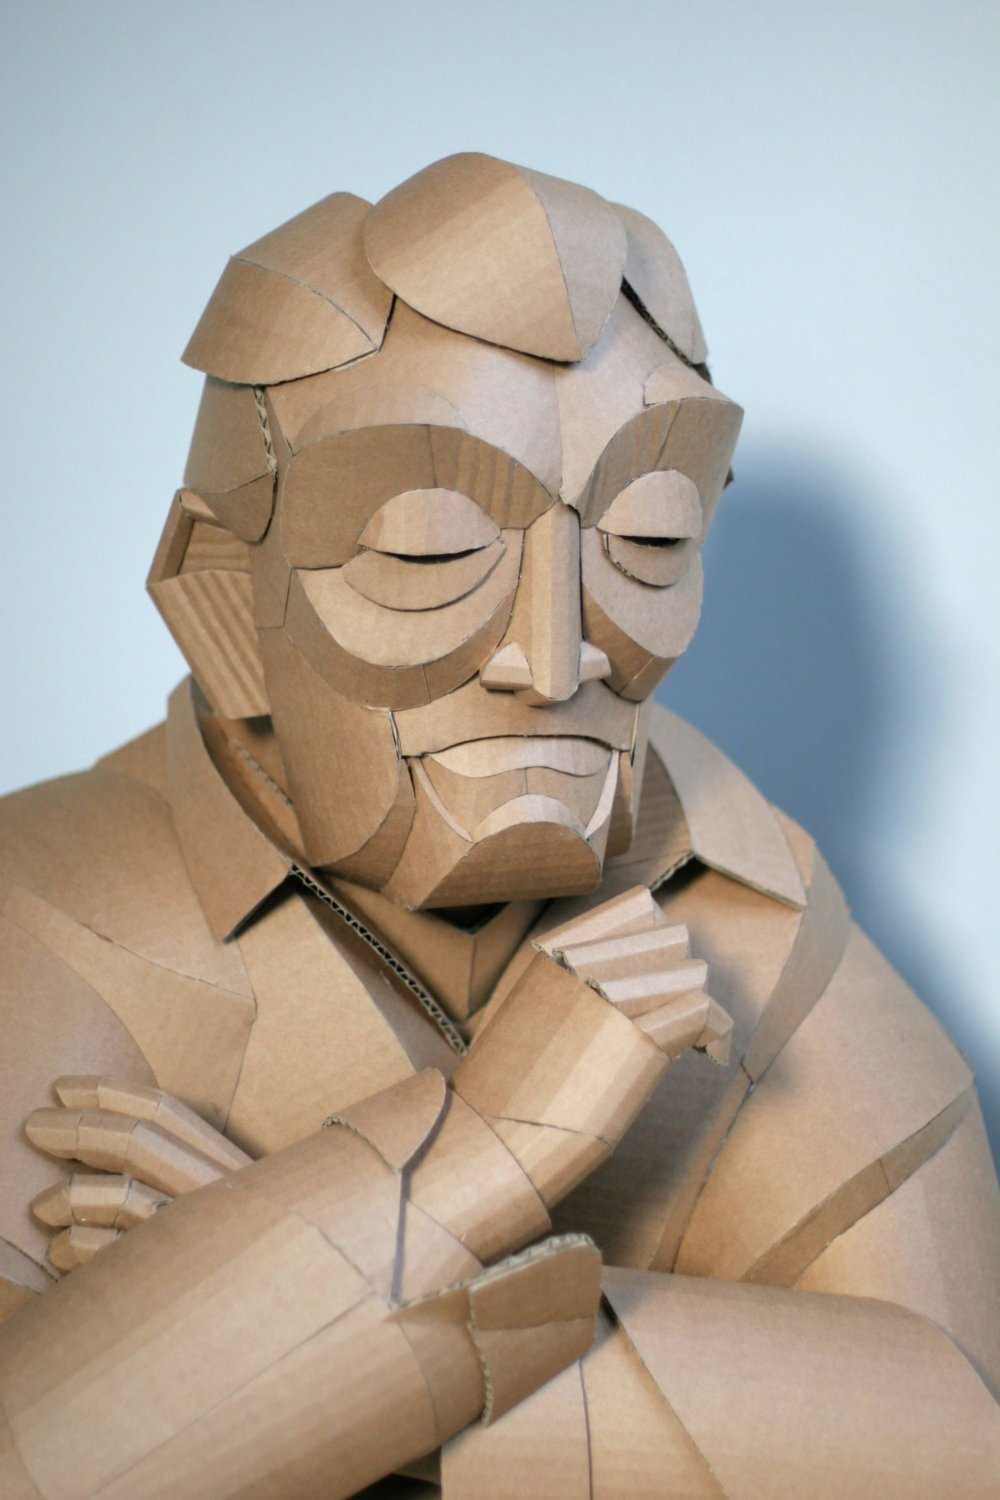 Magnificent Figurative Sculptures Made Entirely Out Of Cardboard By Warren King 5